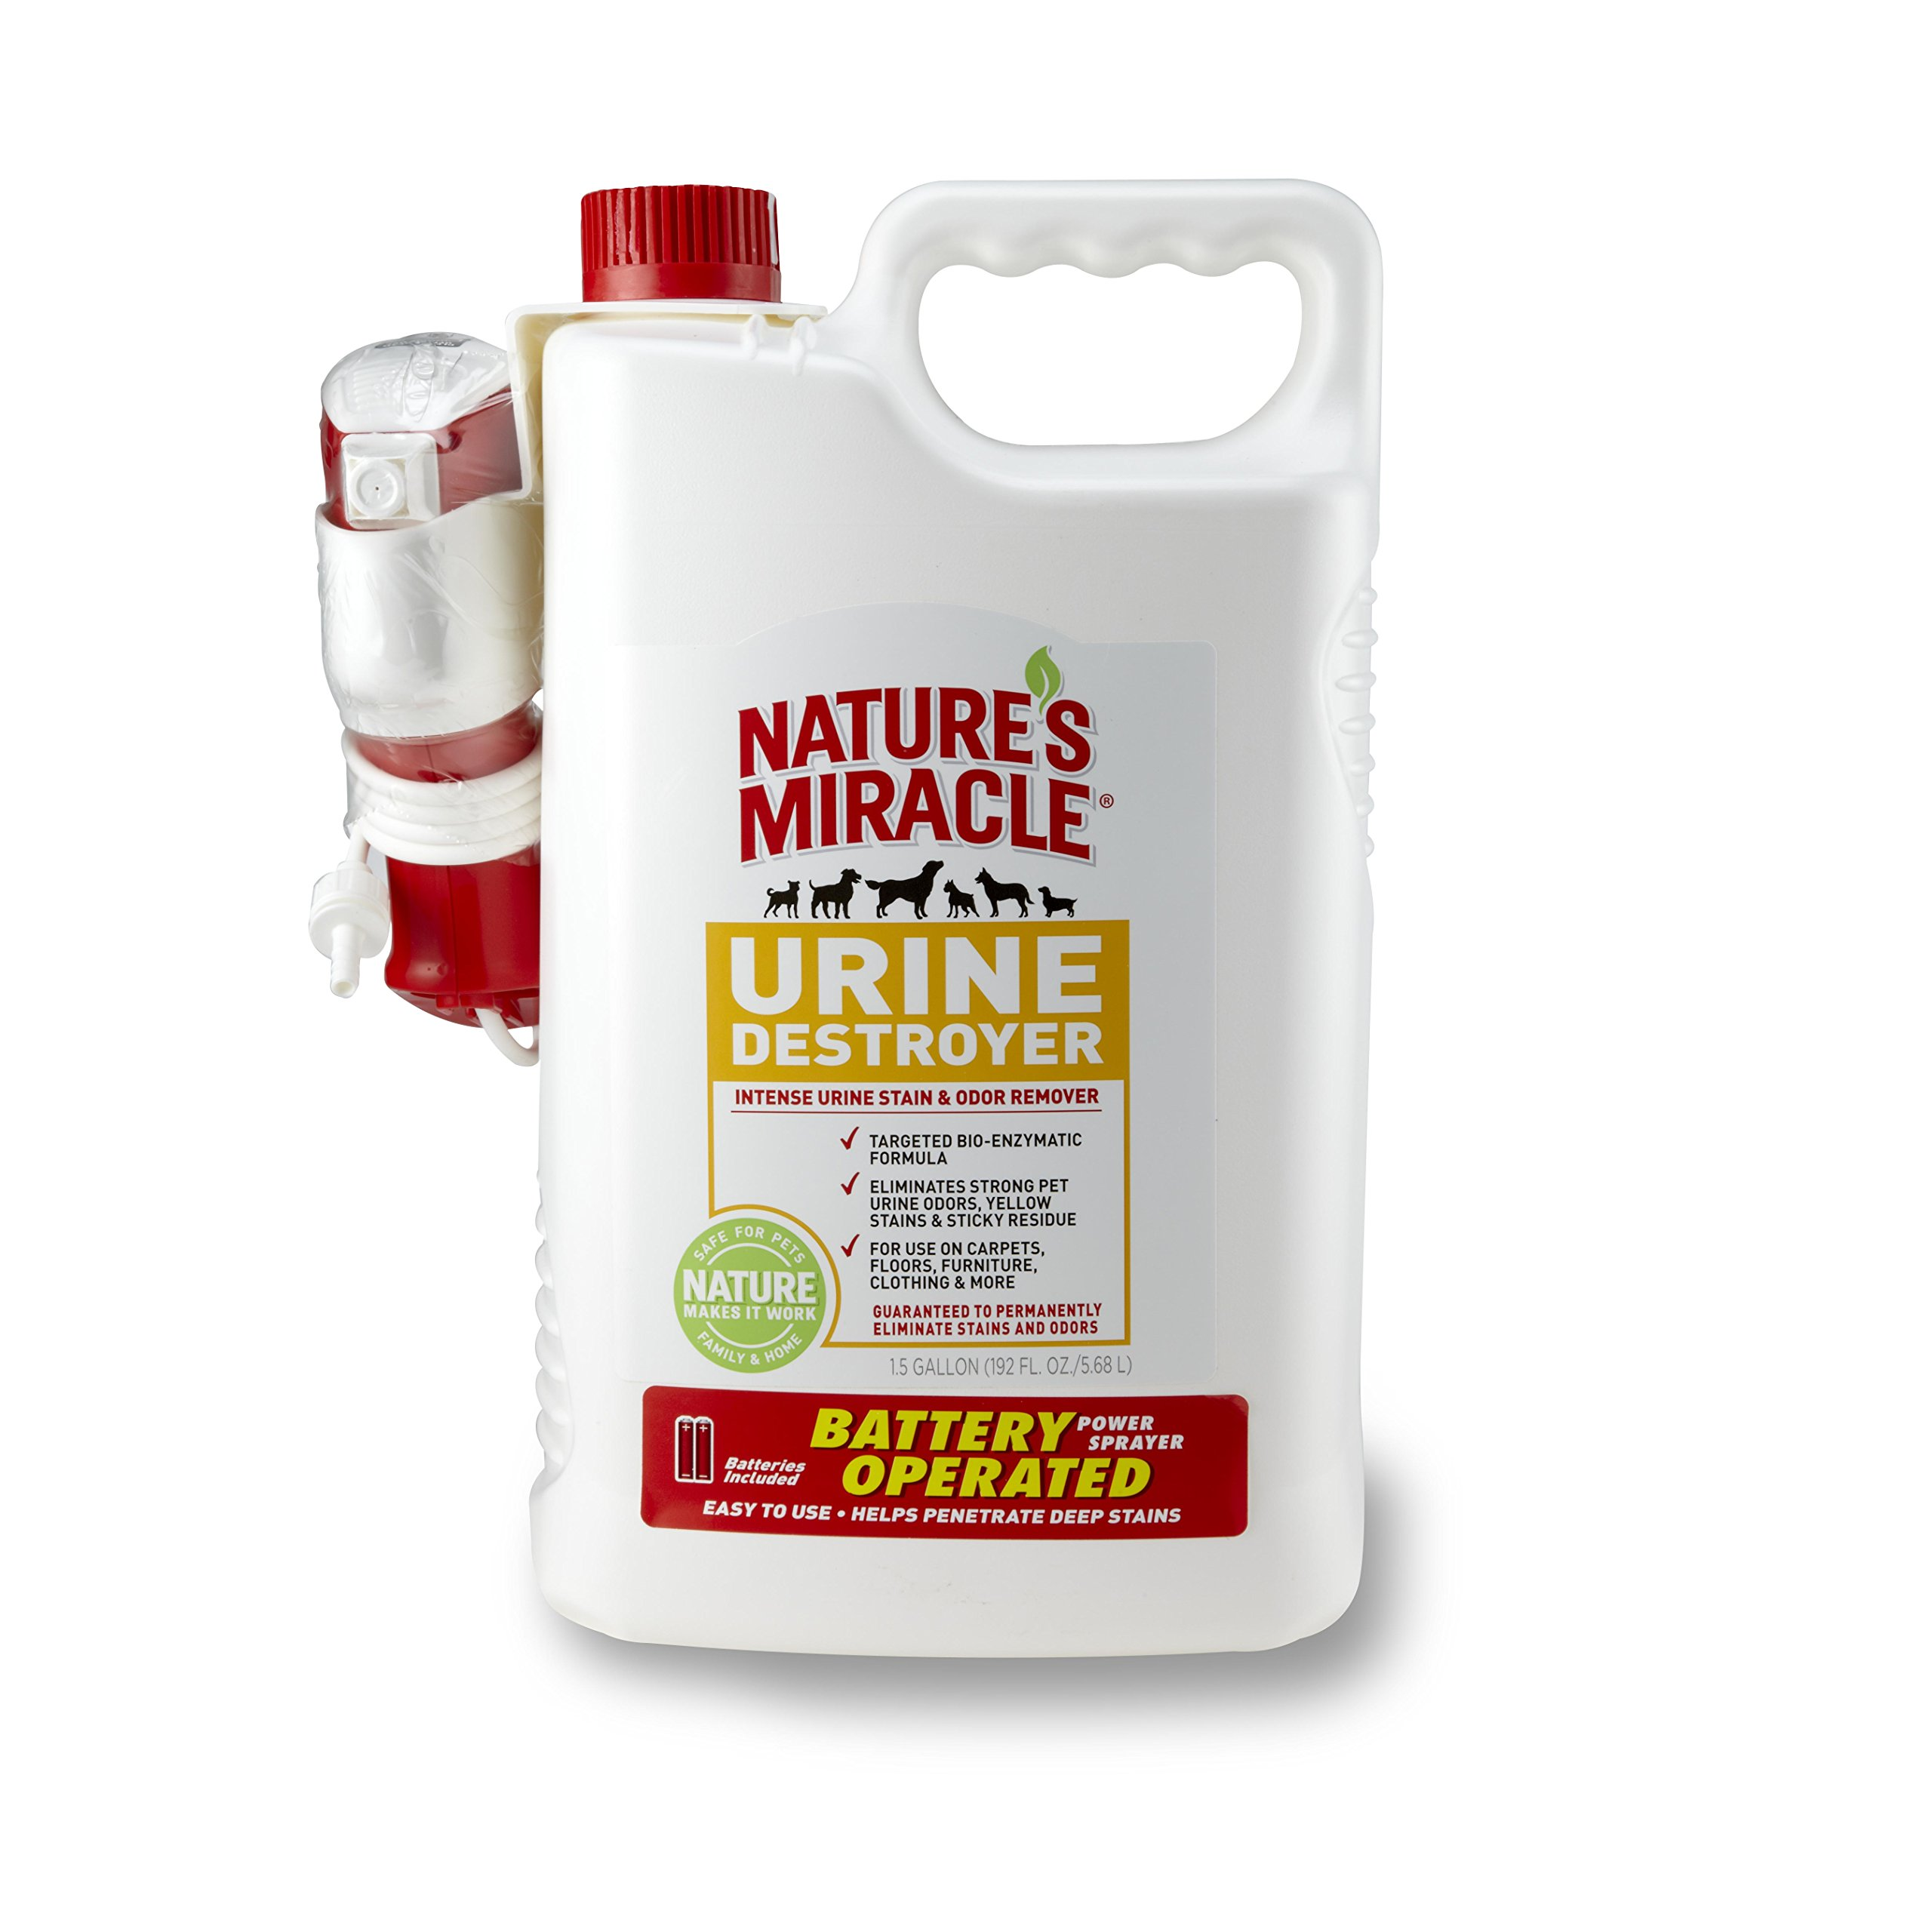 Nature's Miracle Stain & Odor Remover, Urine Destroyer, Power Sprayer w/Batteries, 1.5 Gallon (P-5788)